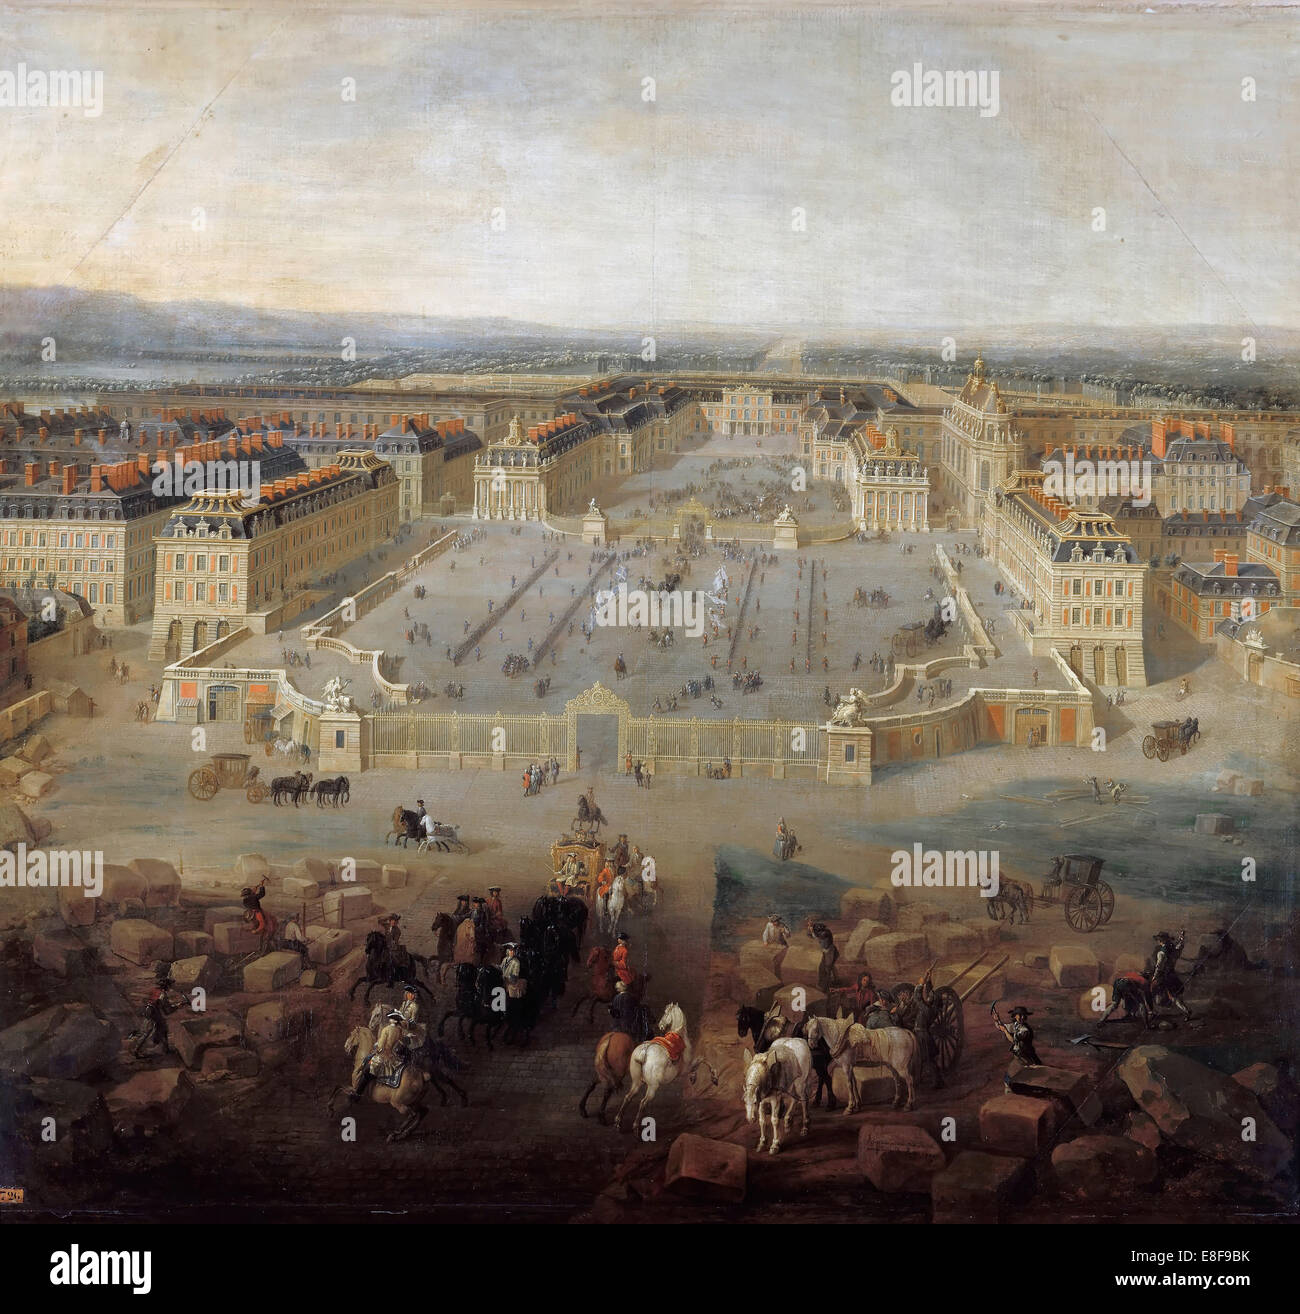 View of the palace of Versailles from the Place d'Armes in 1722. Artist: Martin, Pierre-Denis II (1663-1742) Stock Photo